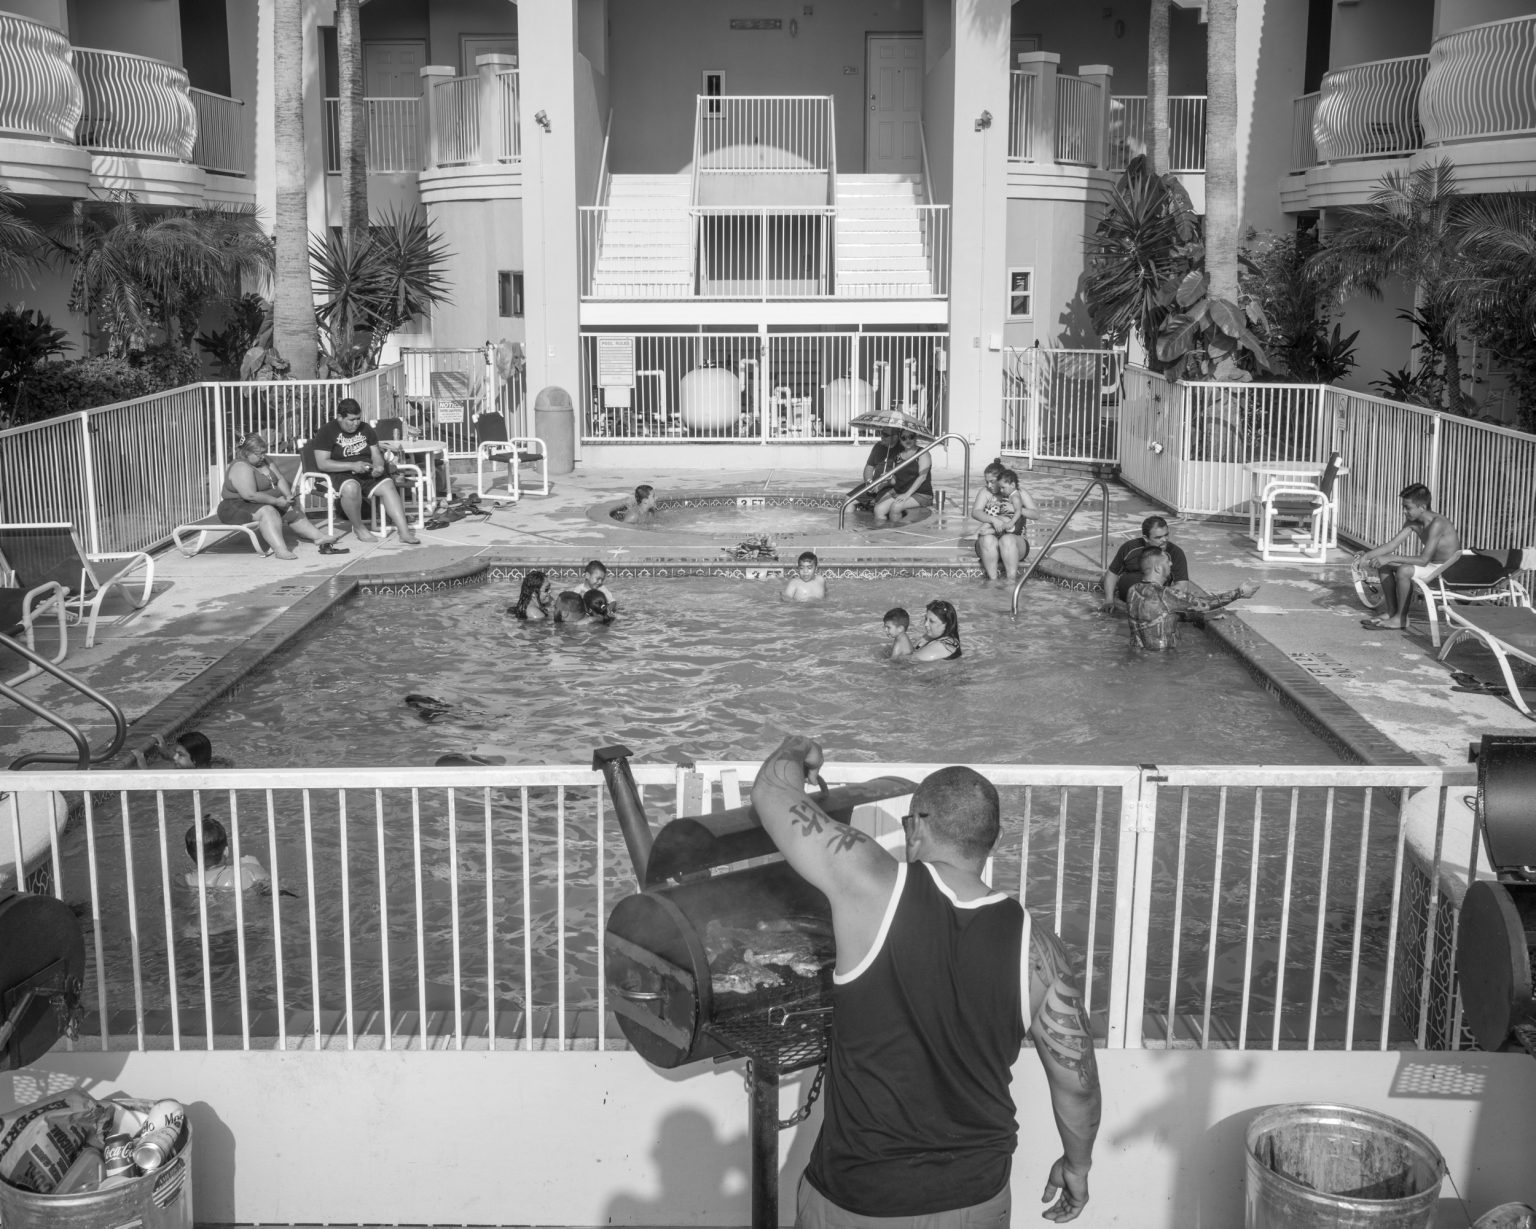 Mexican families during spring break holidays at a motel in South Padre Island, TX.